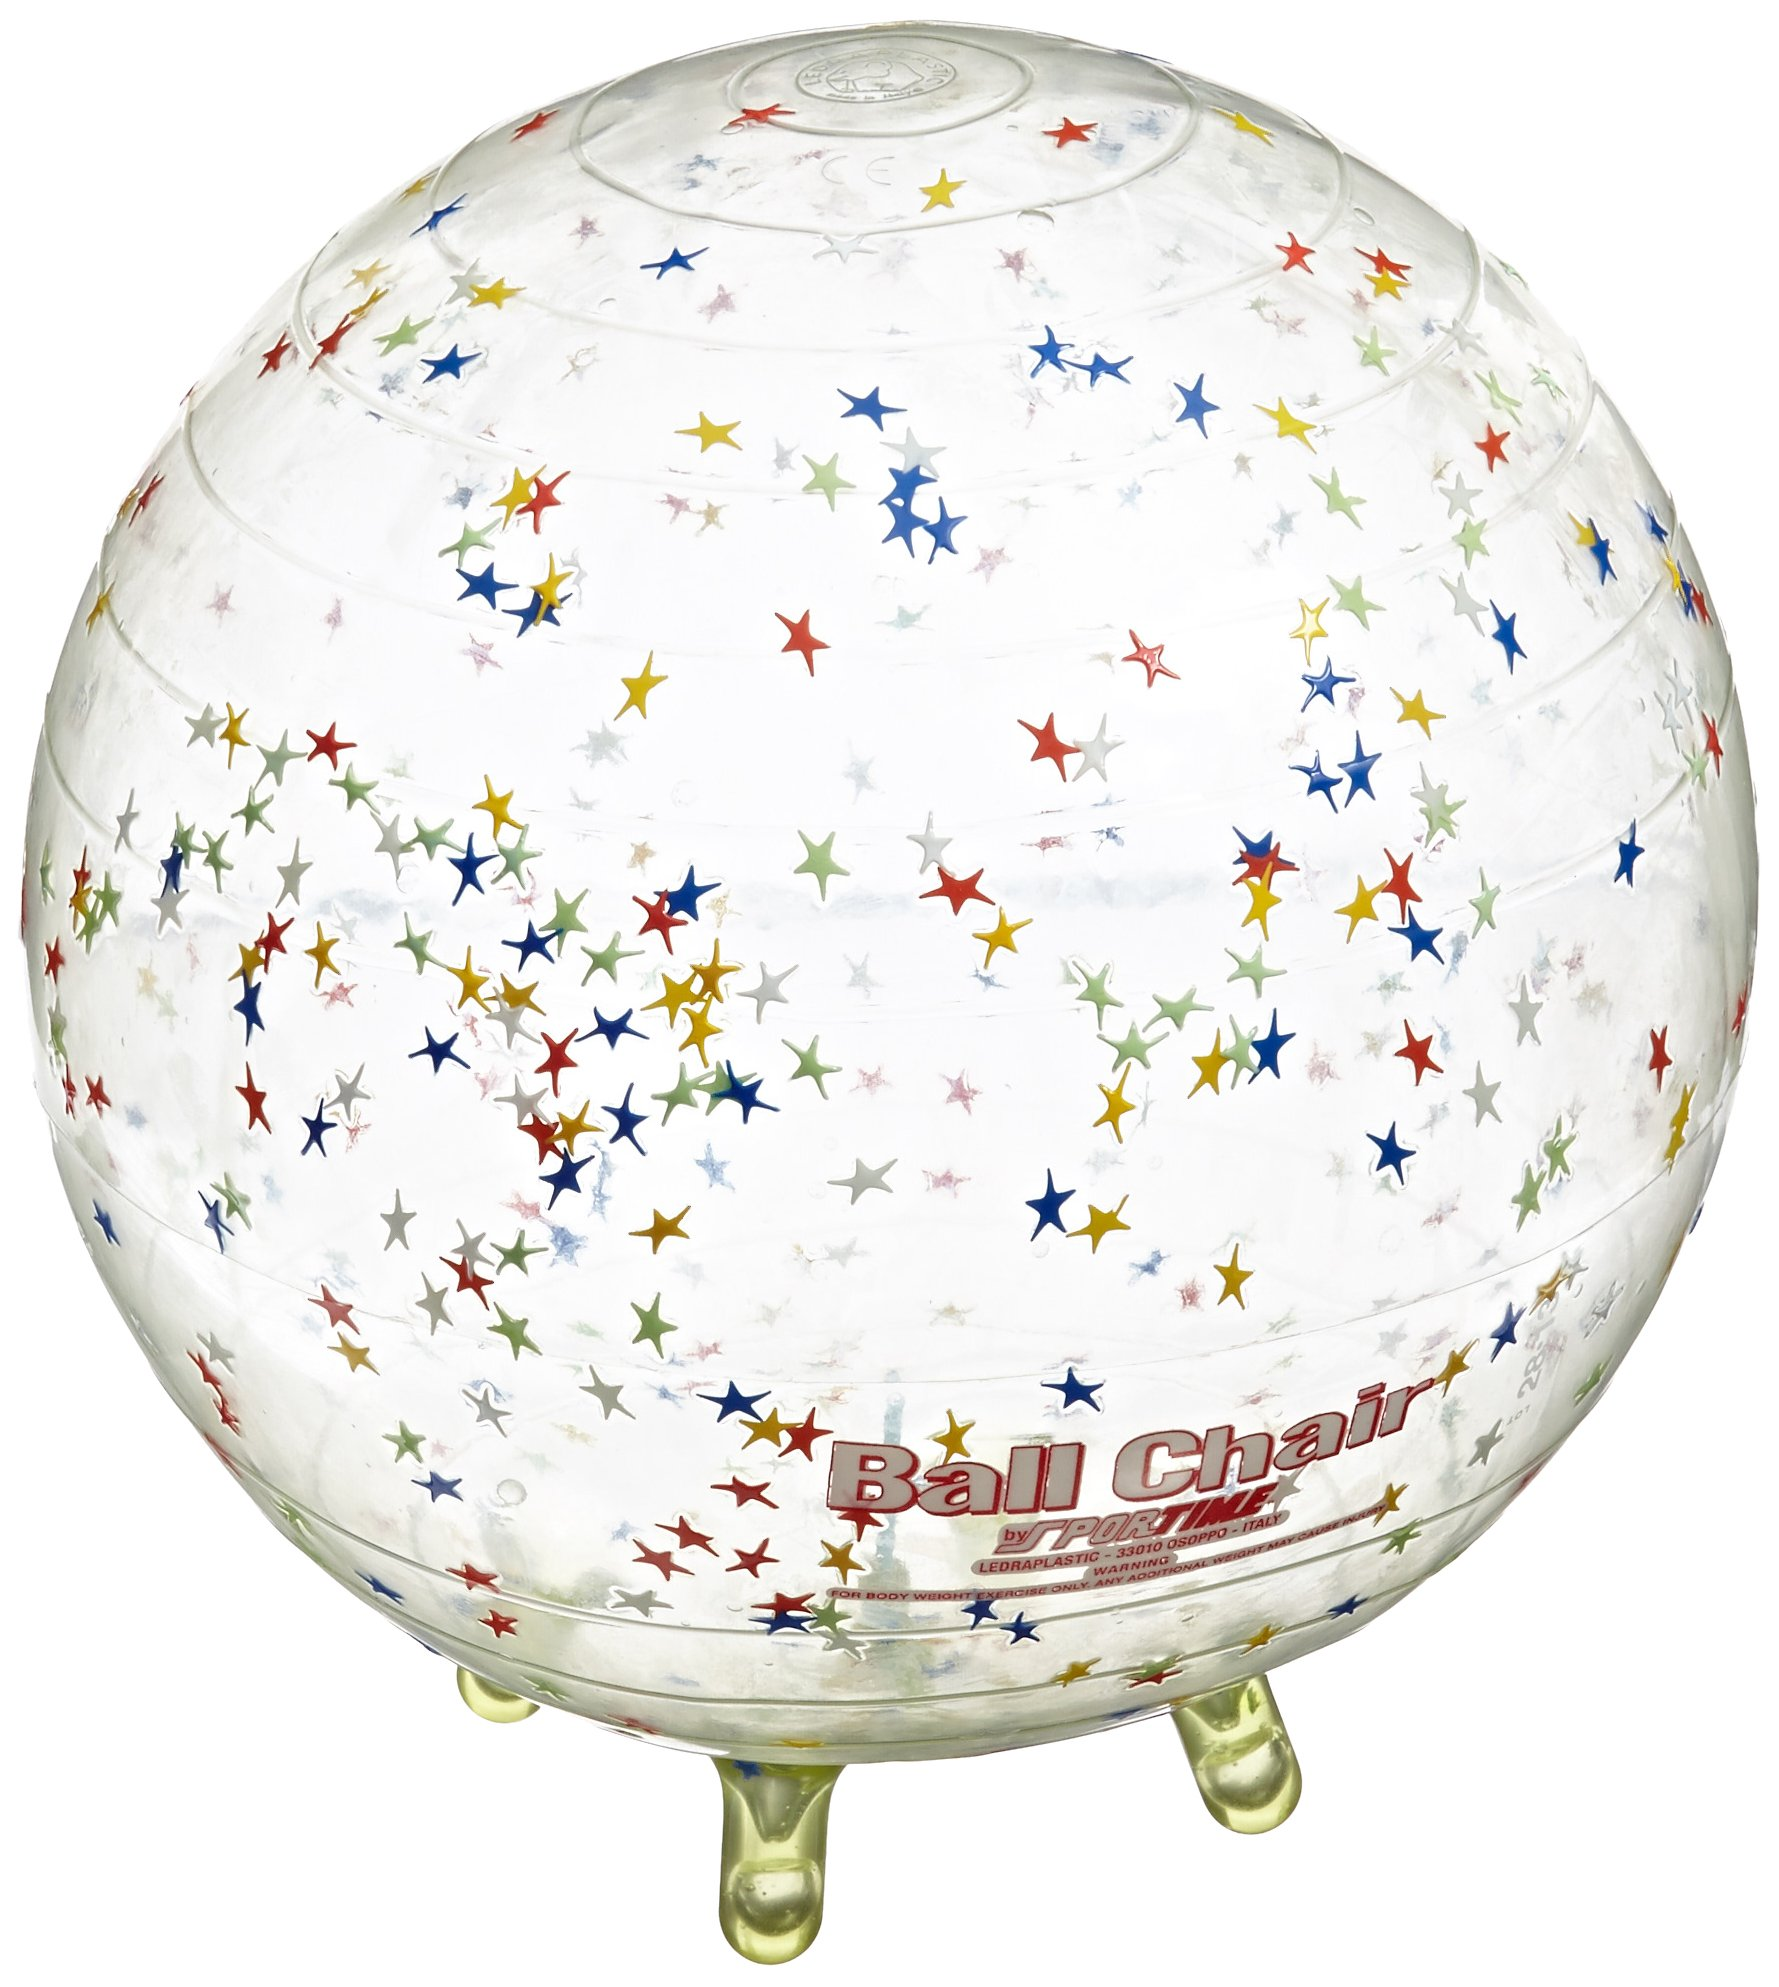 Gymnic Sit'N'Gym Therapy Ball with Built in Legs, 13-1/2 Inches, Clear with Stars by Gymnic